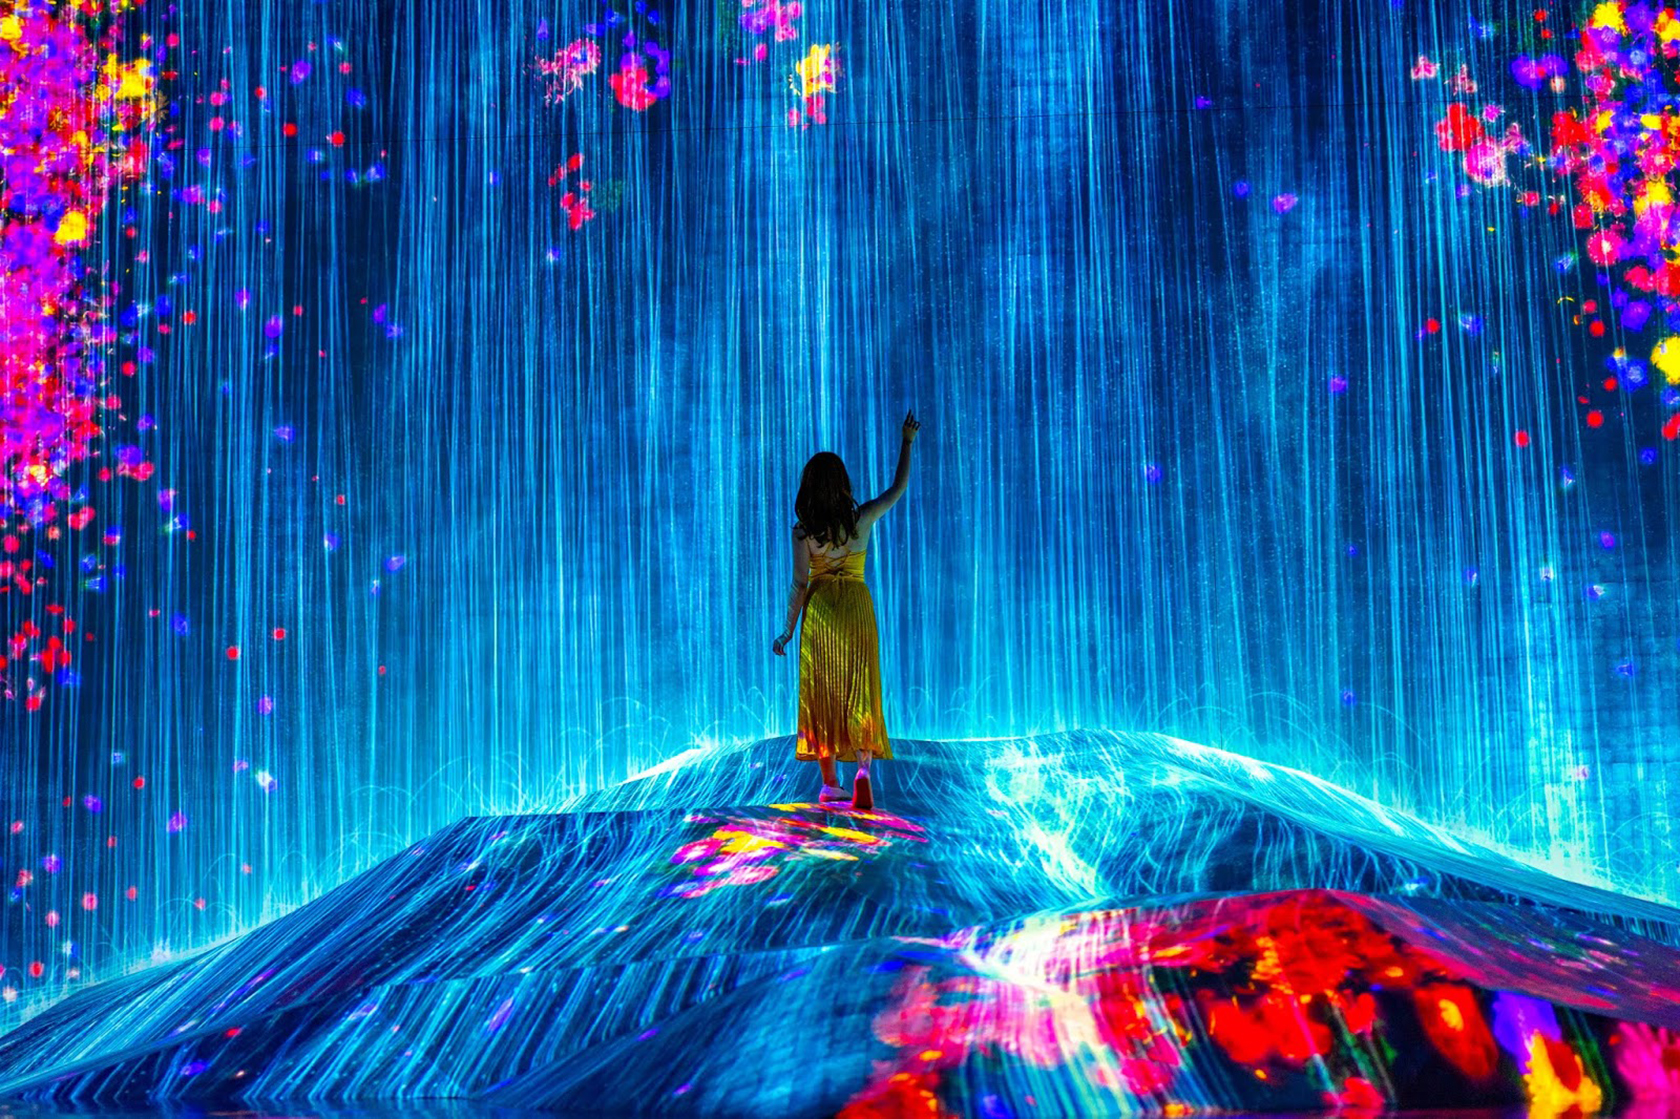 Digitally created scene showing a woman in the middle of a rainy landscape